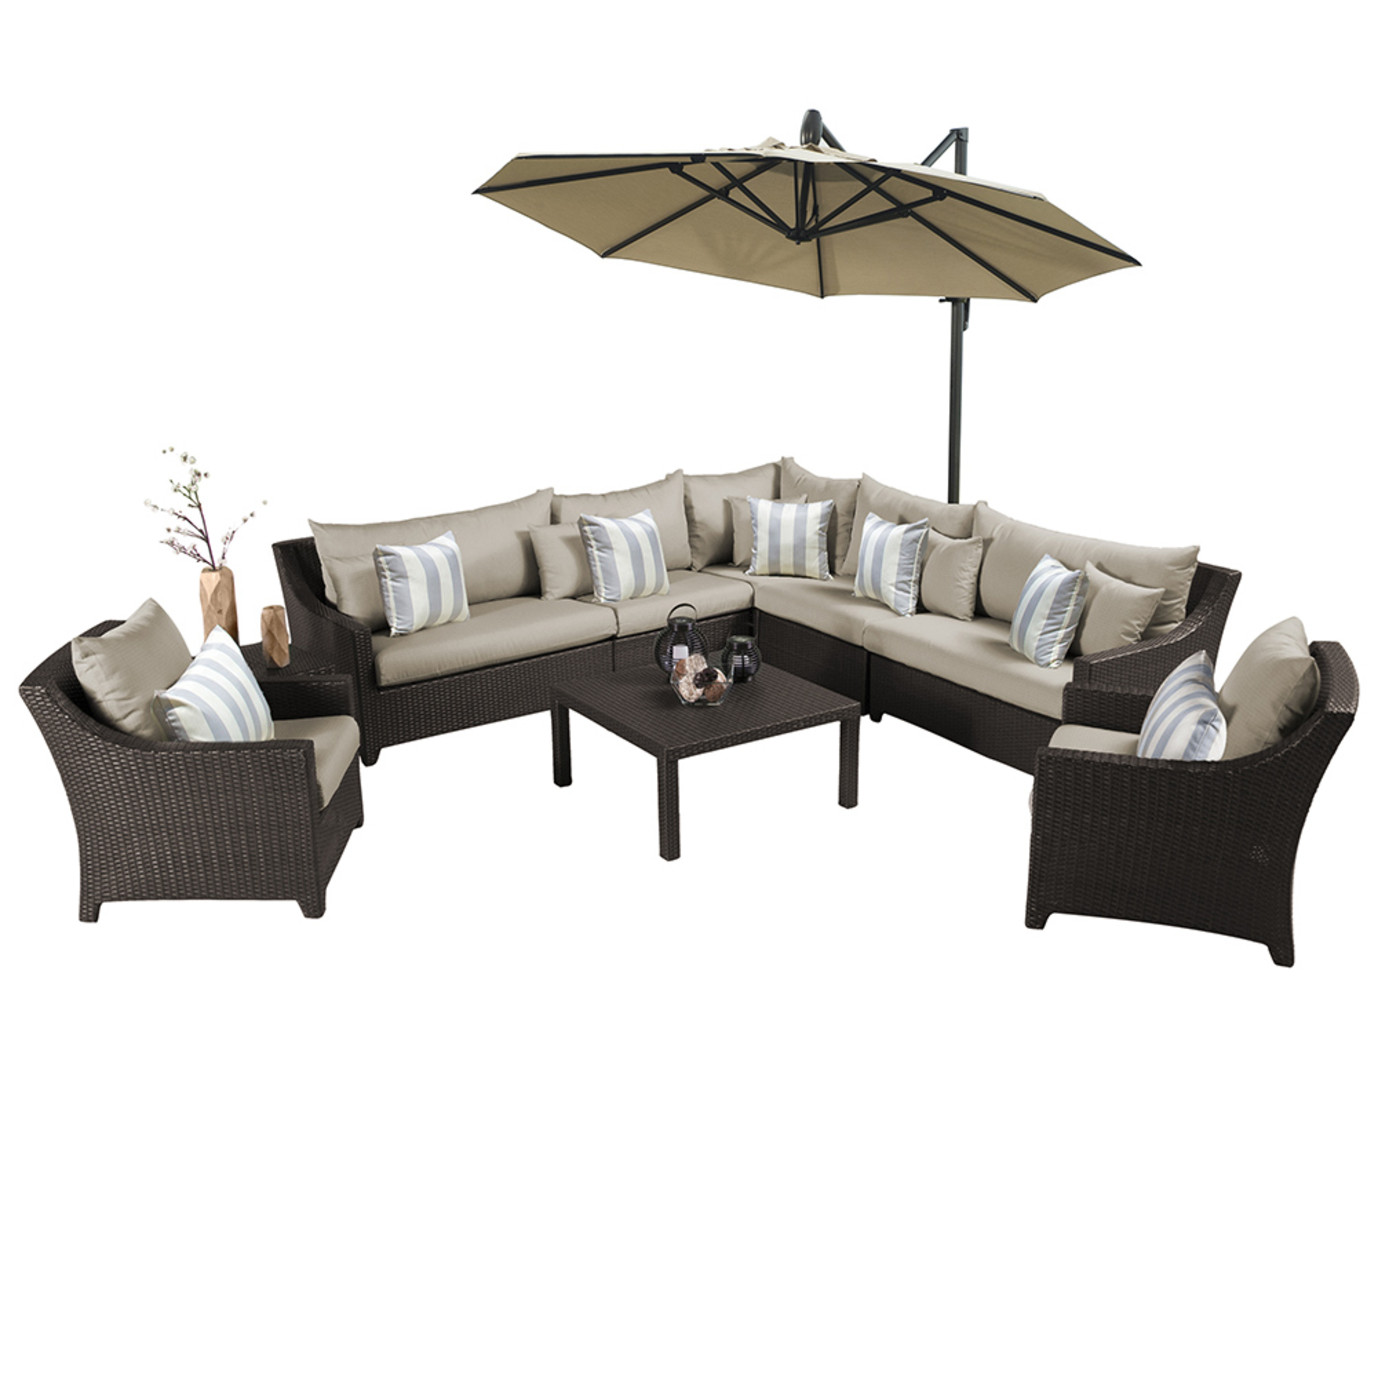 Deco™ 9pc Sectional and Club Set with Umbrella - Slate Grey